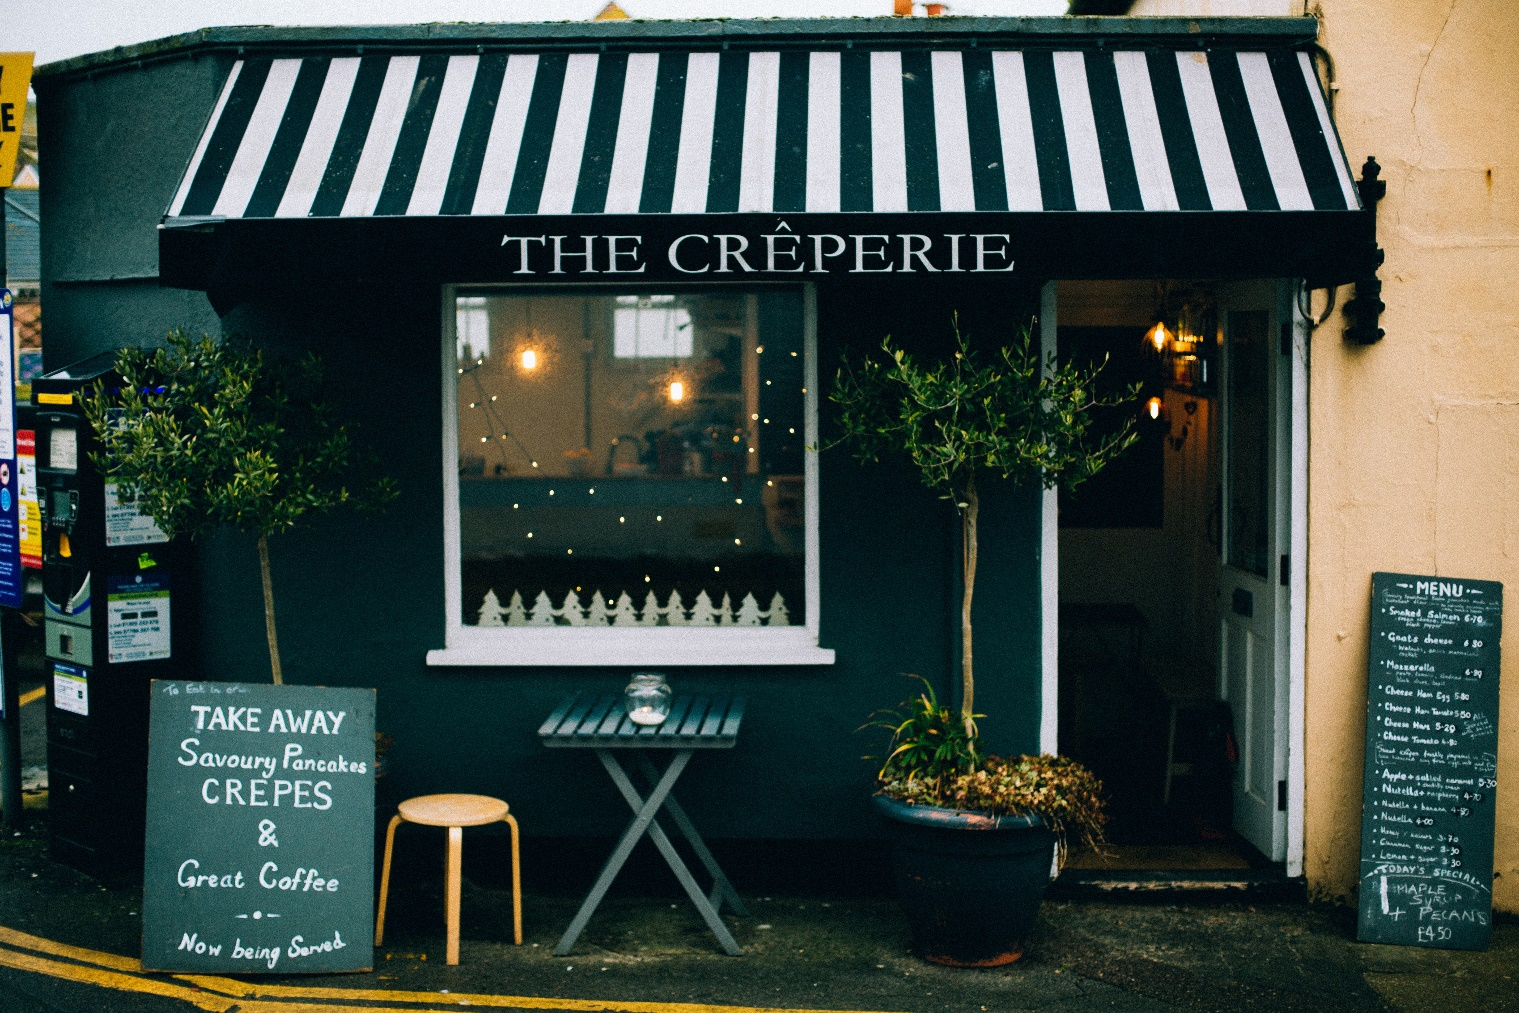 The Creperie Storefront Signs in Charlotte, NC